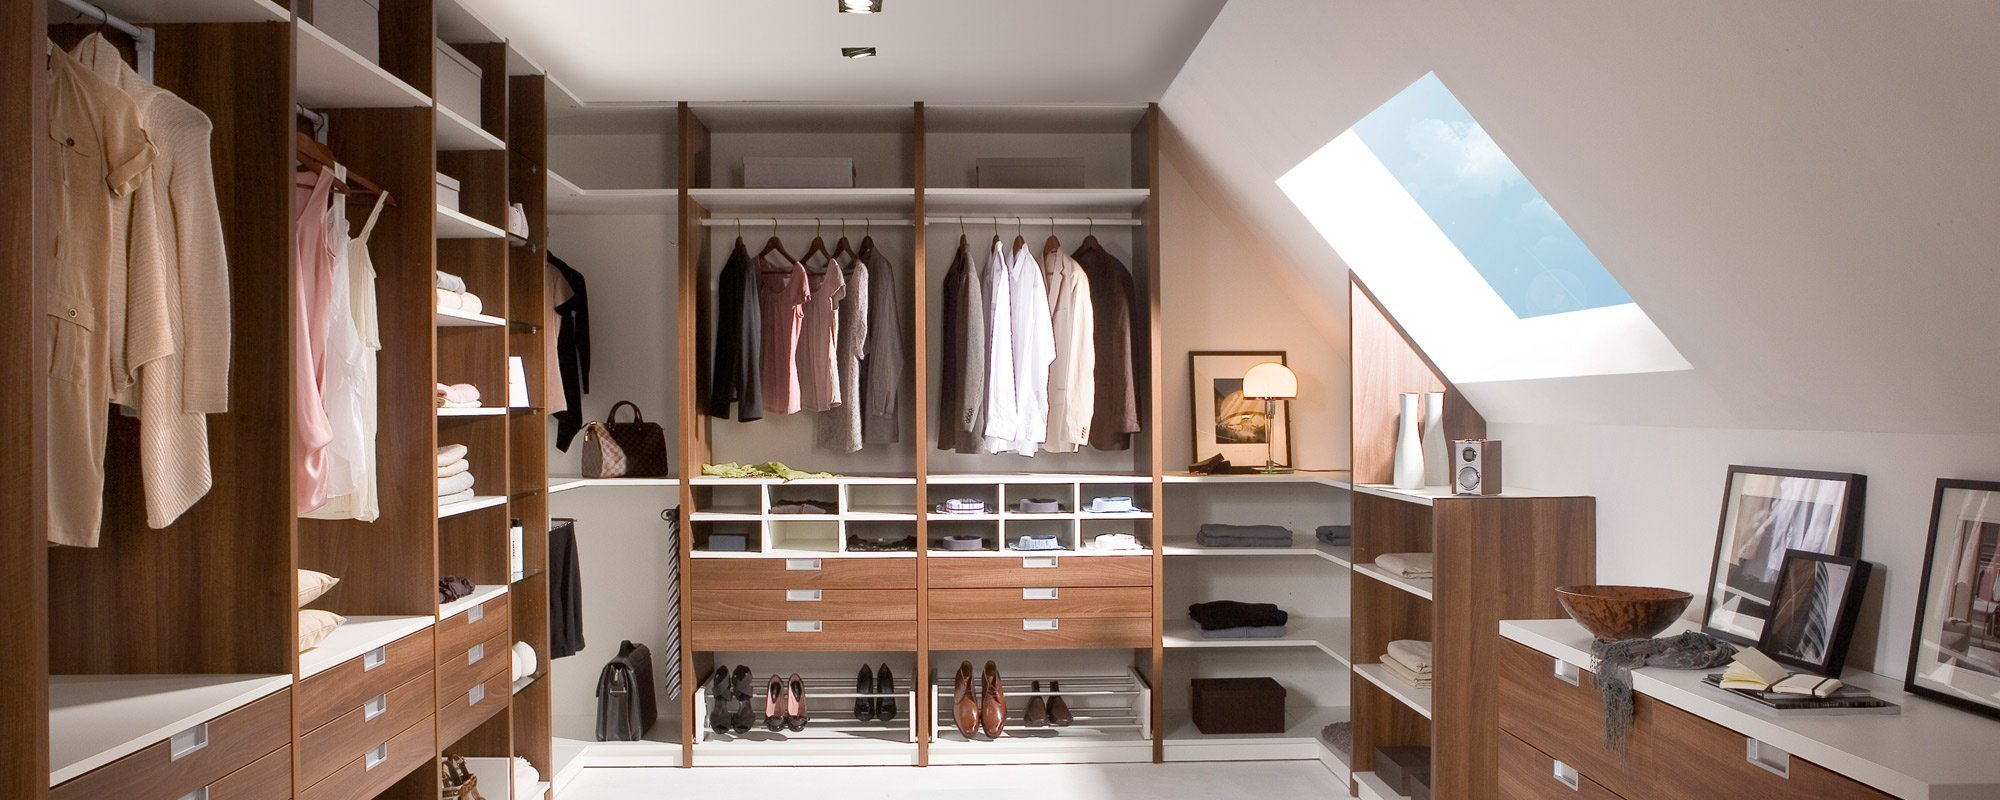 View of a well organised wardrobe